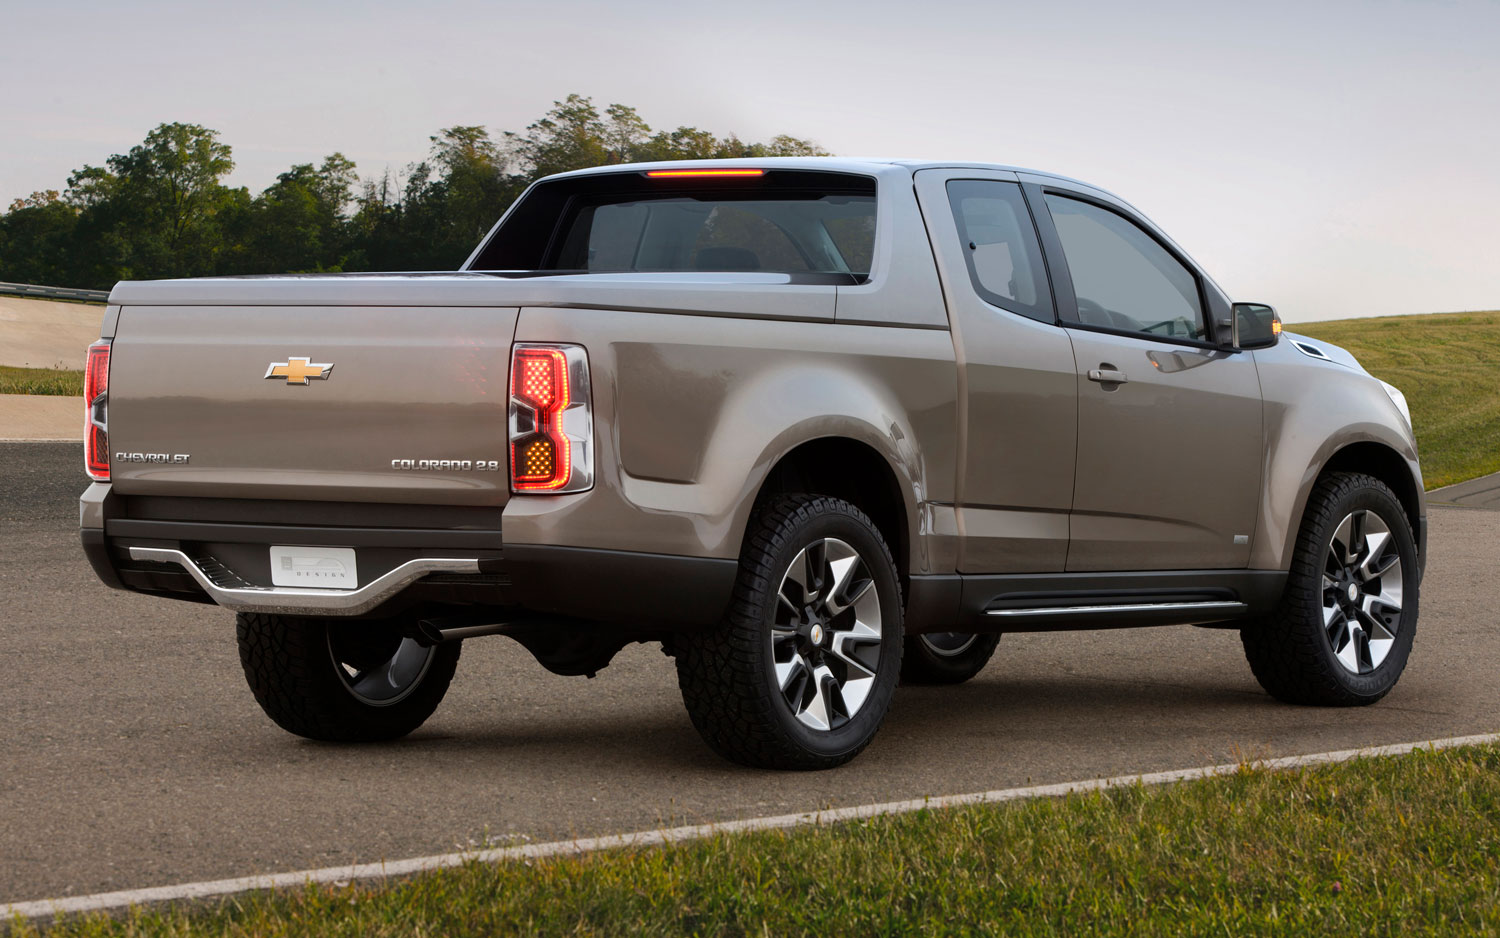 Avalanche chevy avalanche 2014 : Chevrolet's Plans for 2012-2014: New Vehicles, Fuel Economy, and ...